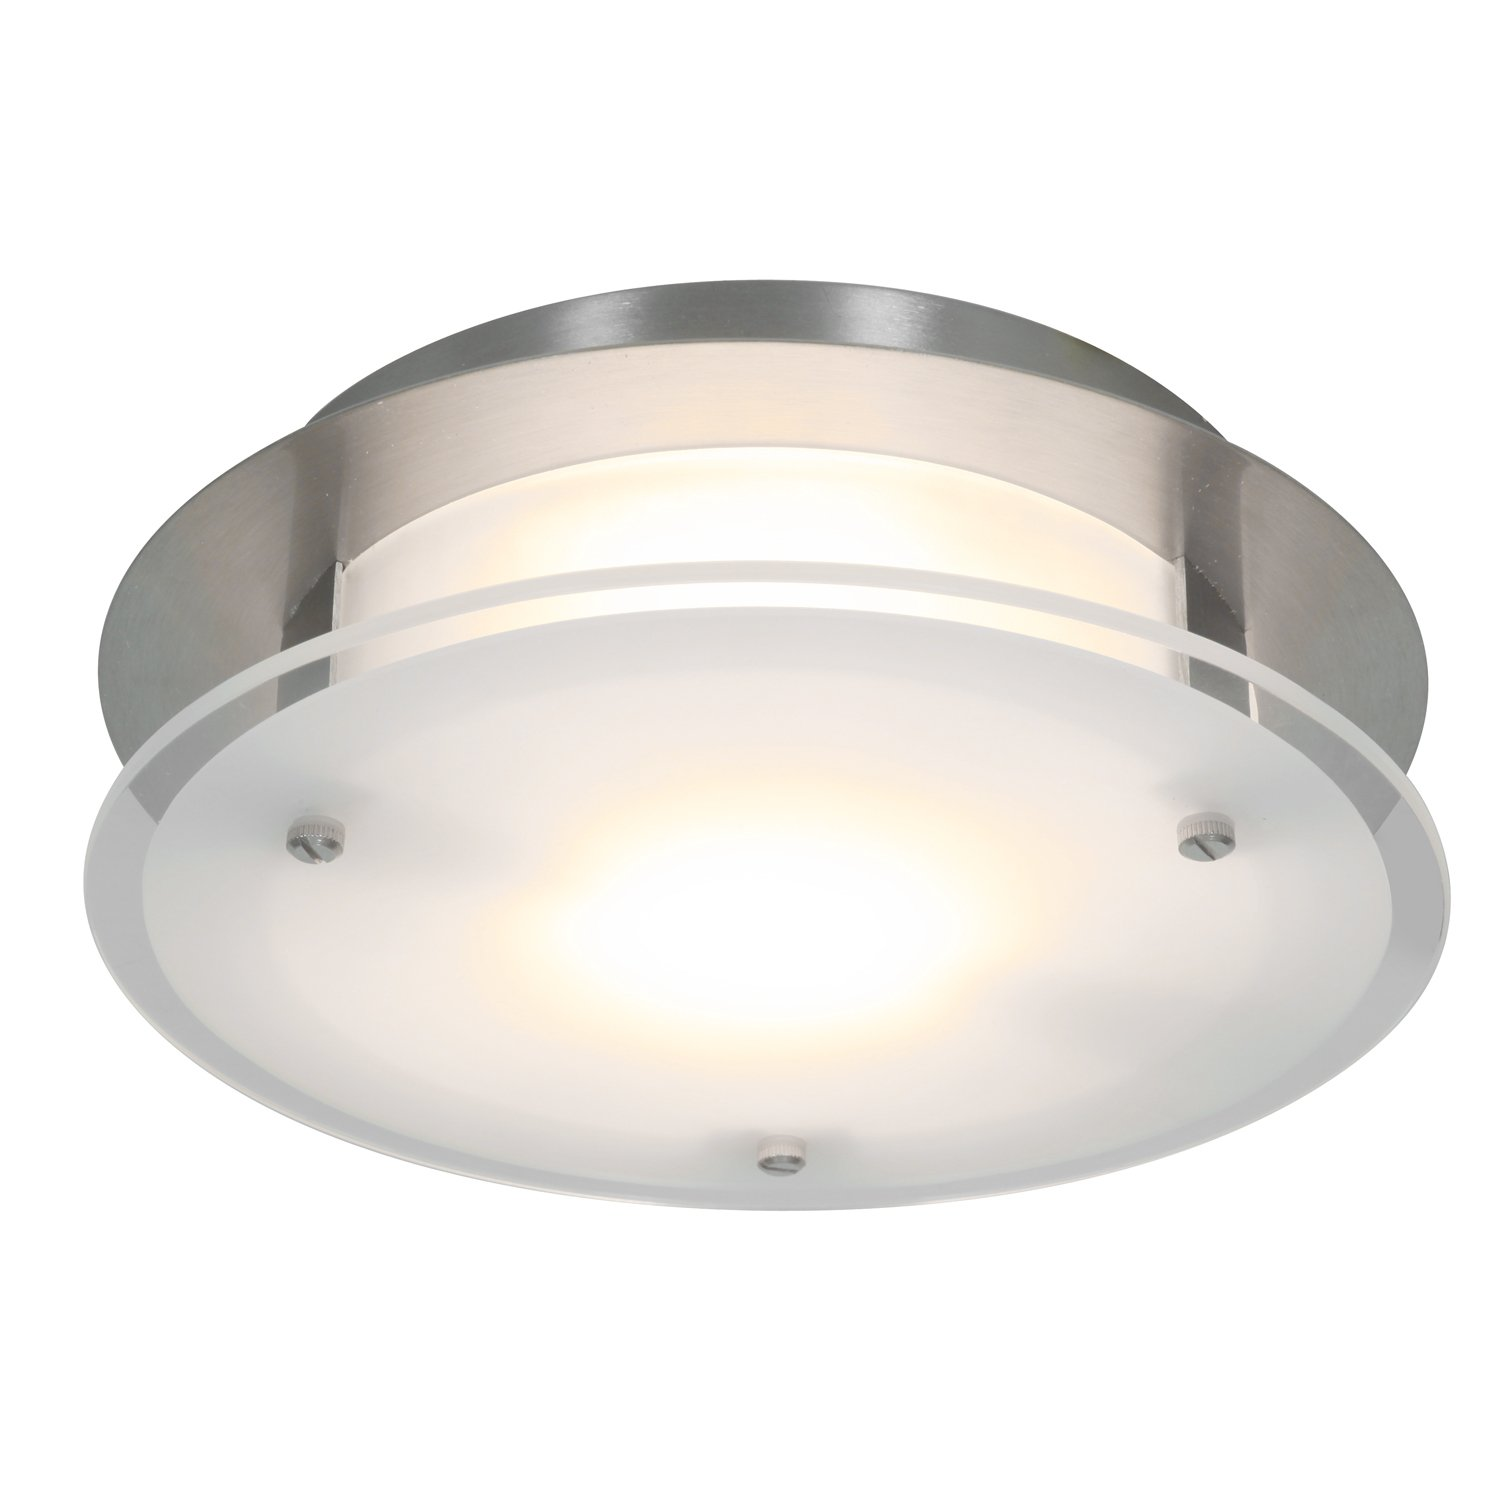 Access Lighting VisionRound 10'' LED Flush-Mount - Brushed Steel Finish with Frosted Glass Shade